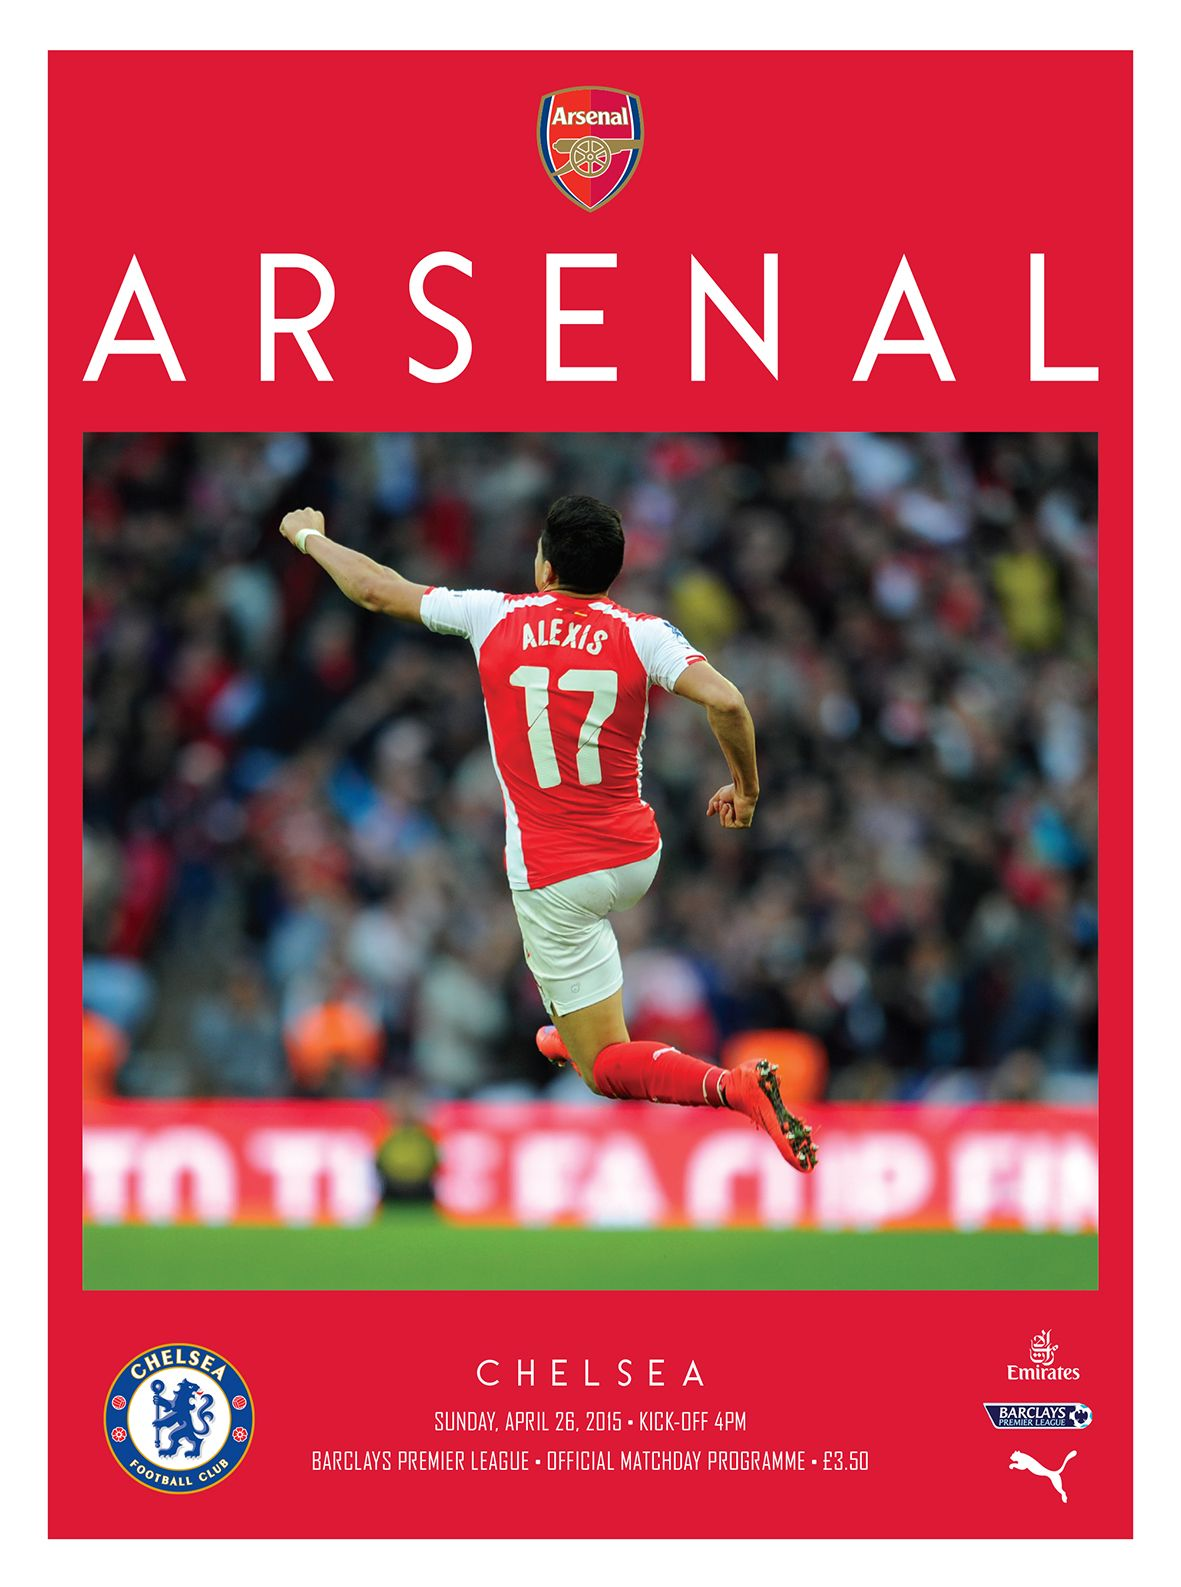 v Chelsea. April 26, 2015. The official Arsenal Matchday